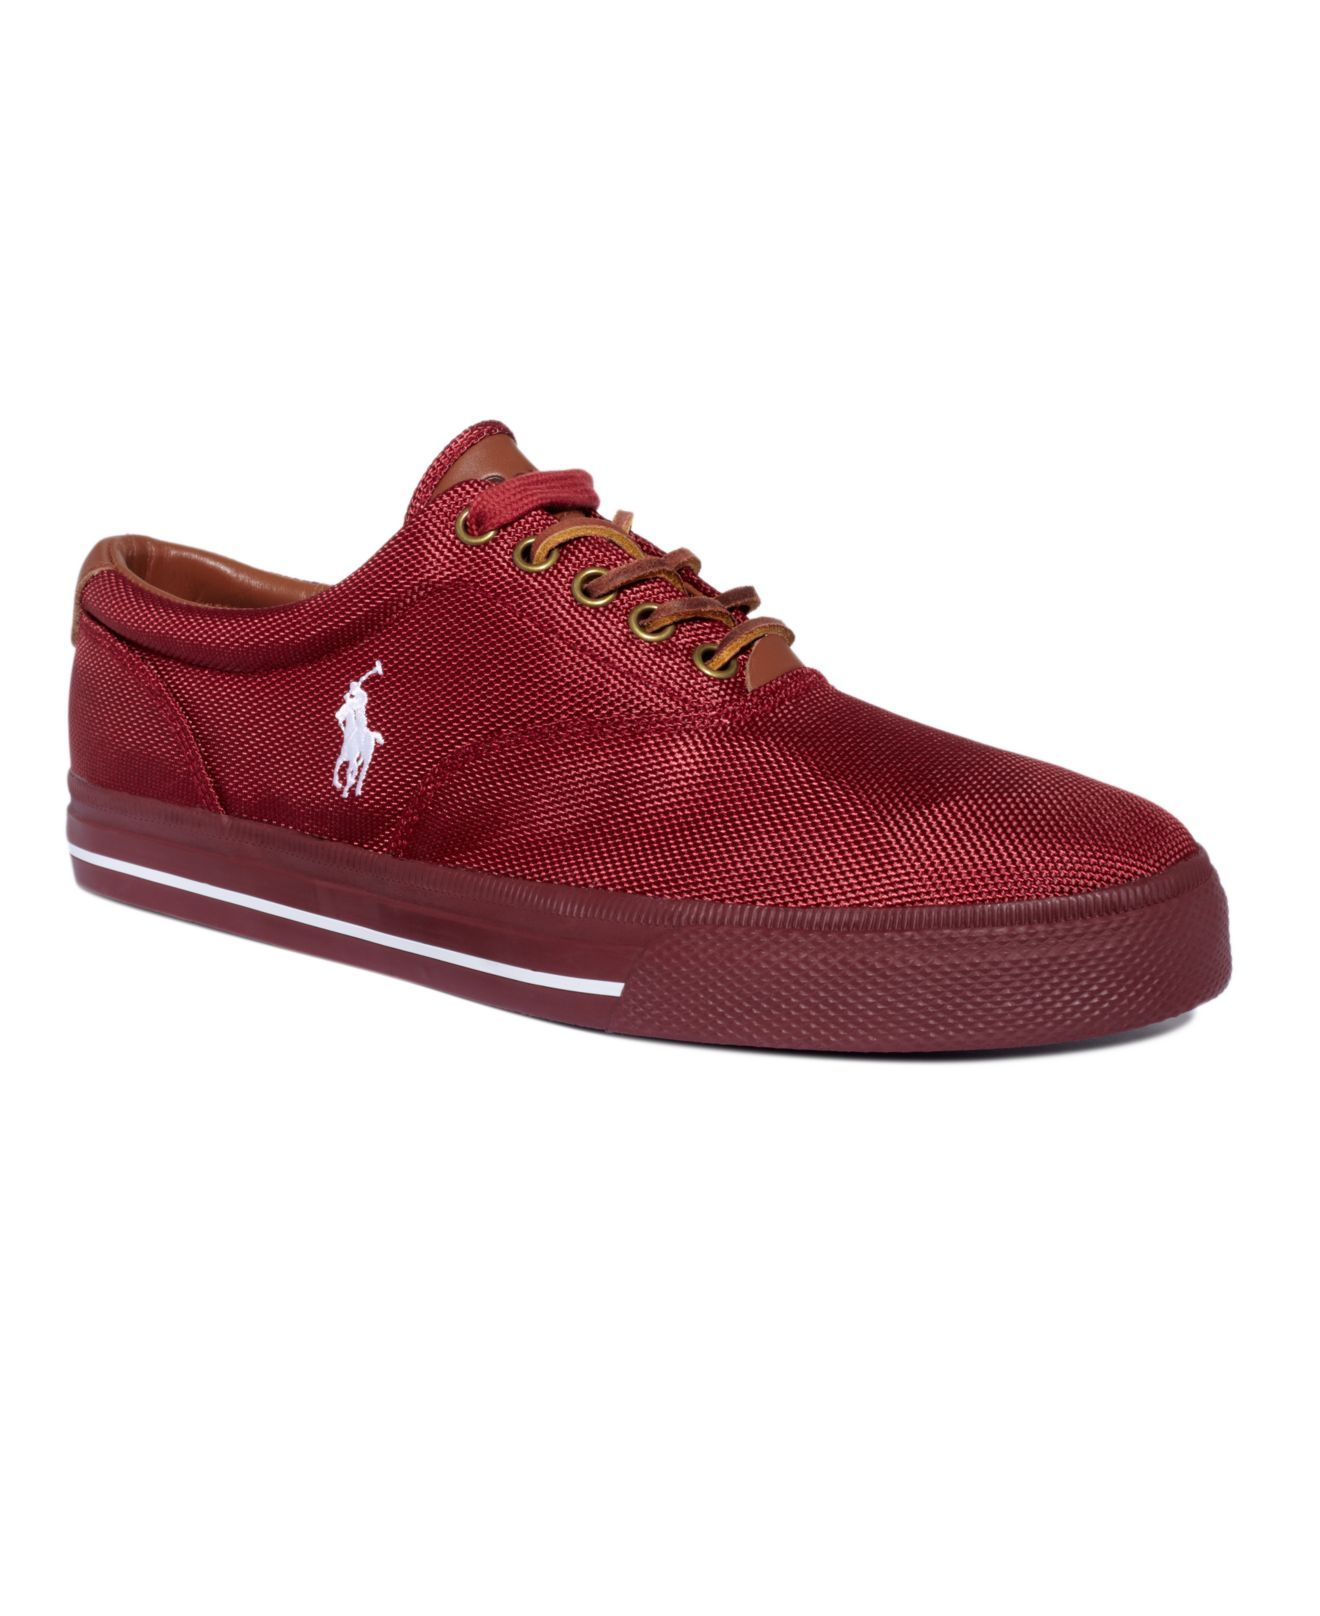 7def808f10ea22 Polo Ralph Lauren Shoes, Vaughn Nylon Sneakers - Mens Polo Ralph Lauren -  Macy s